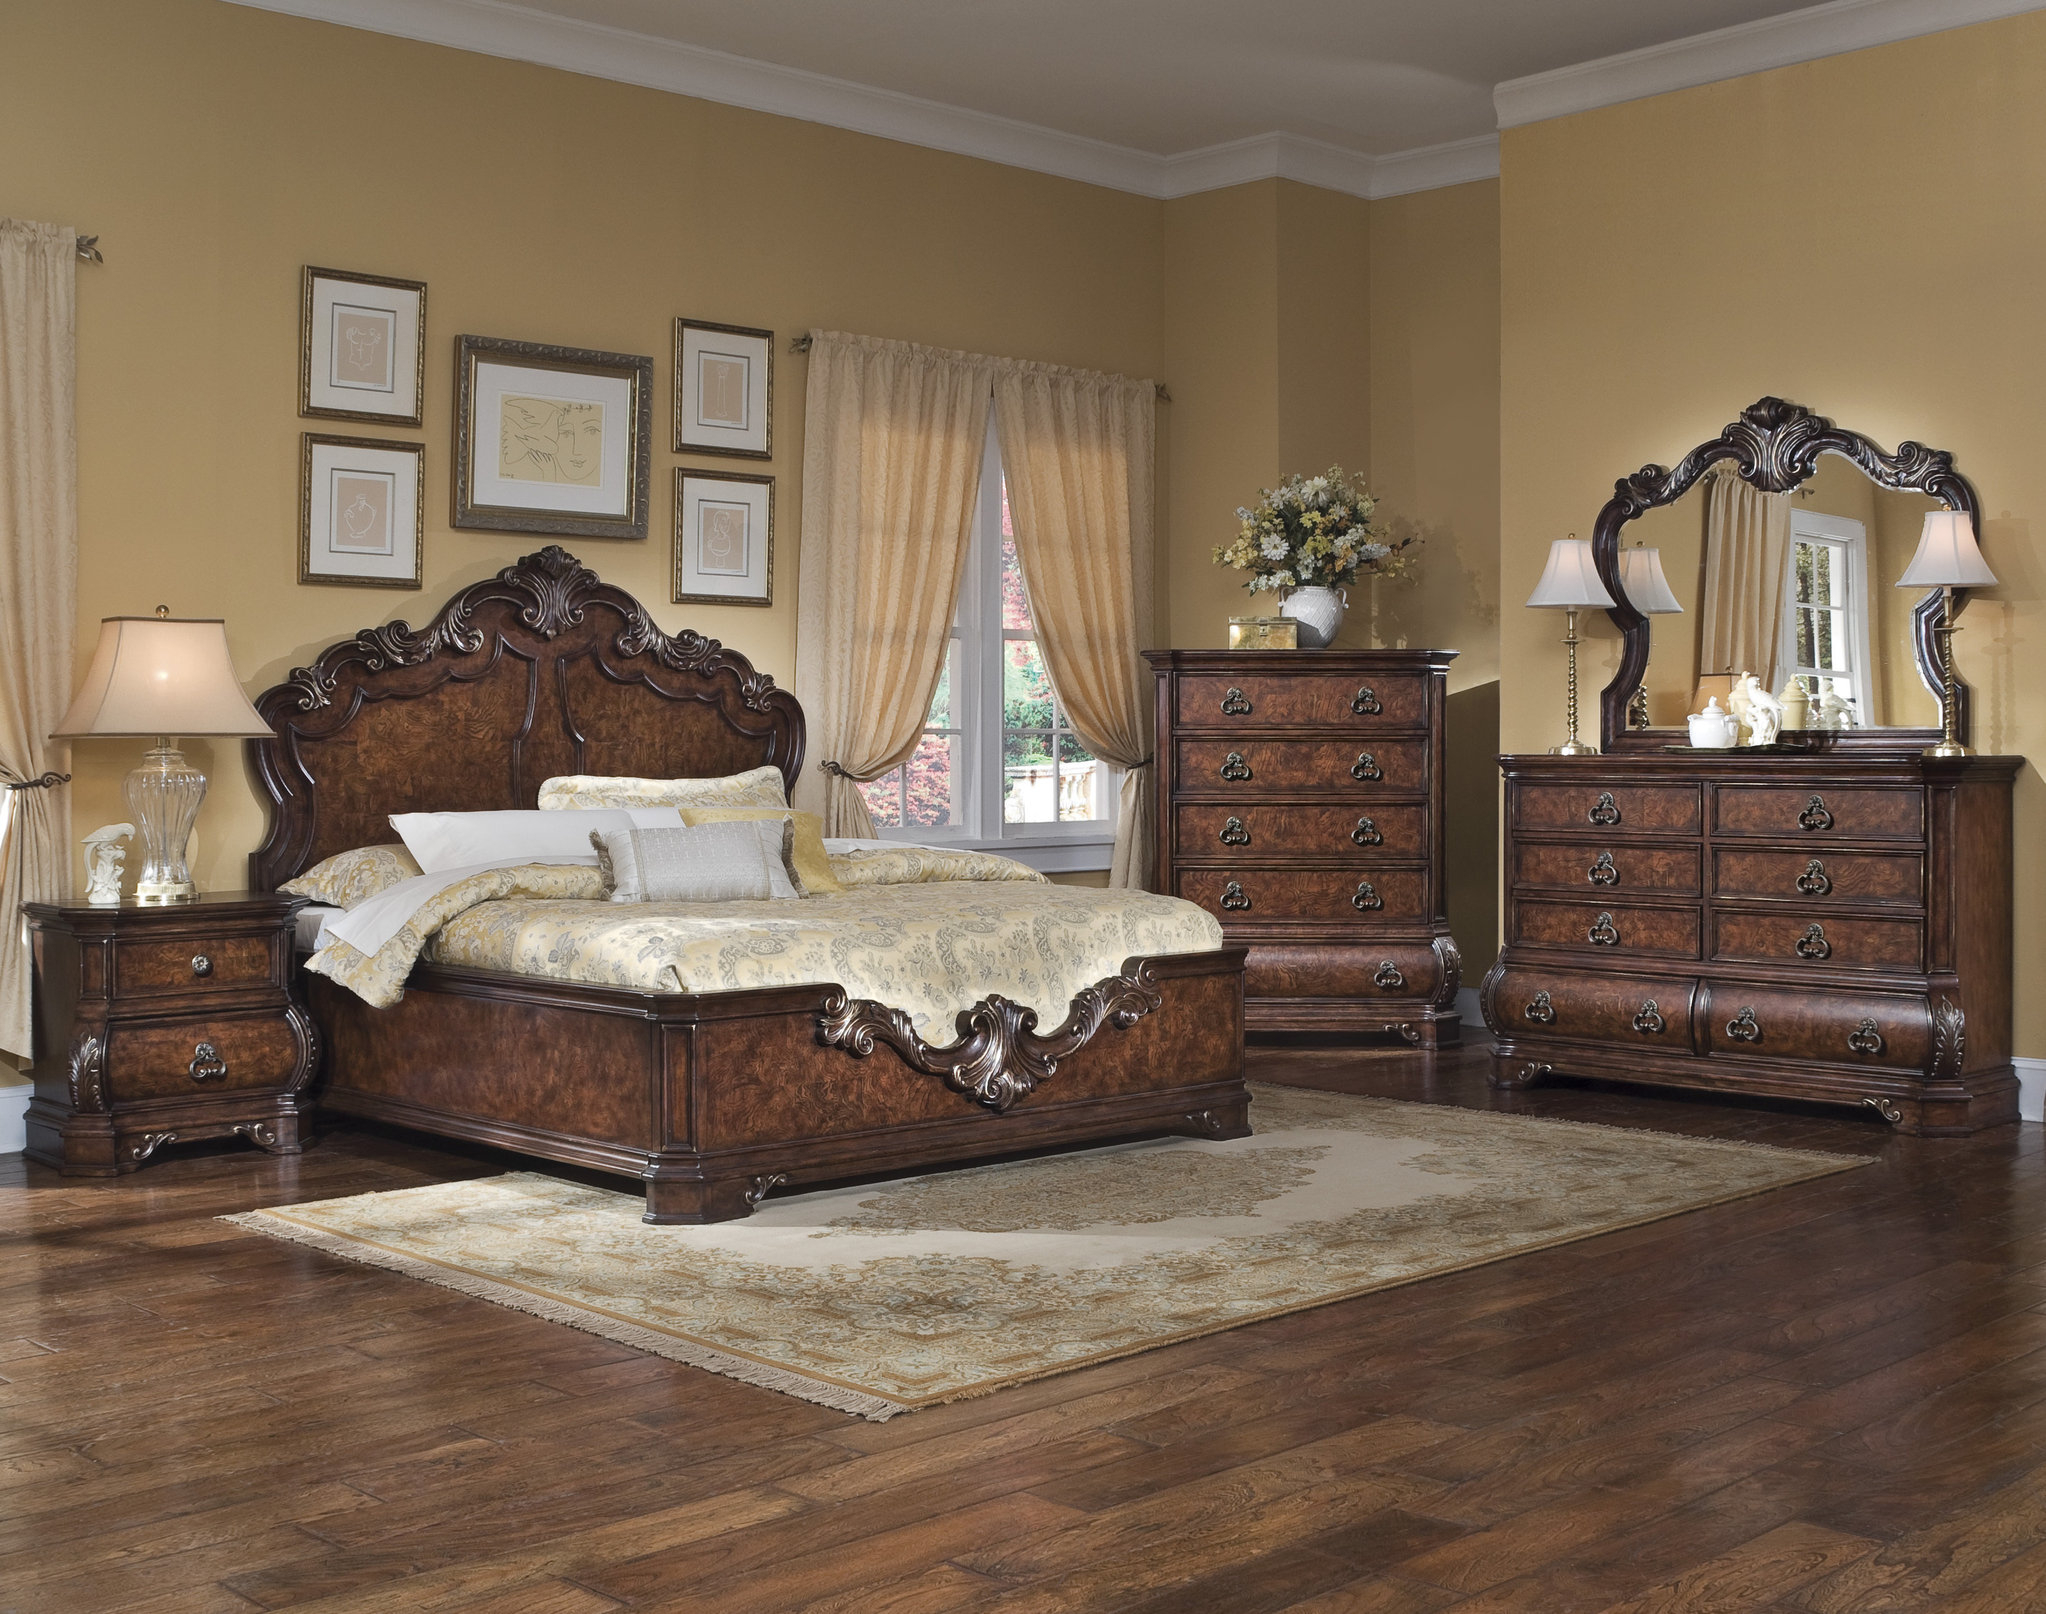 Pulaski Bedroom Sets 7